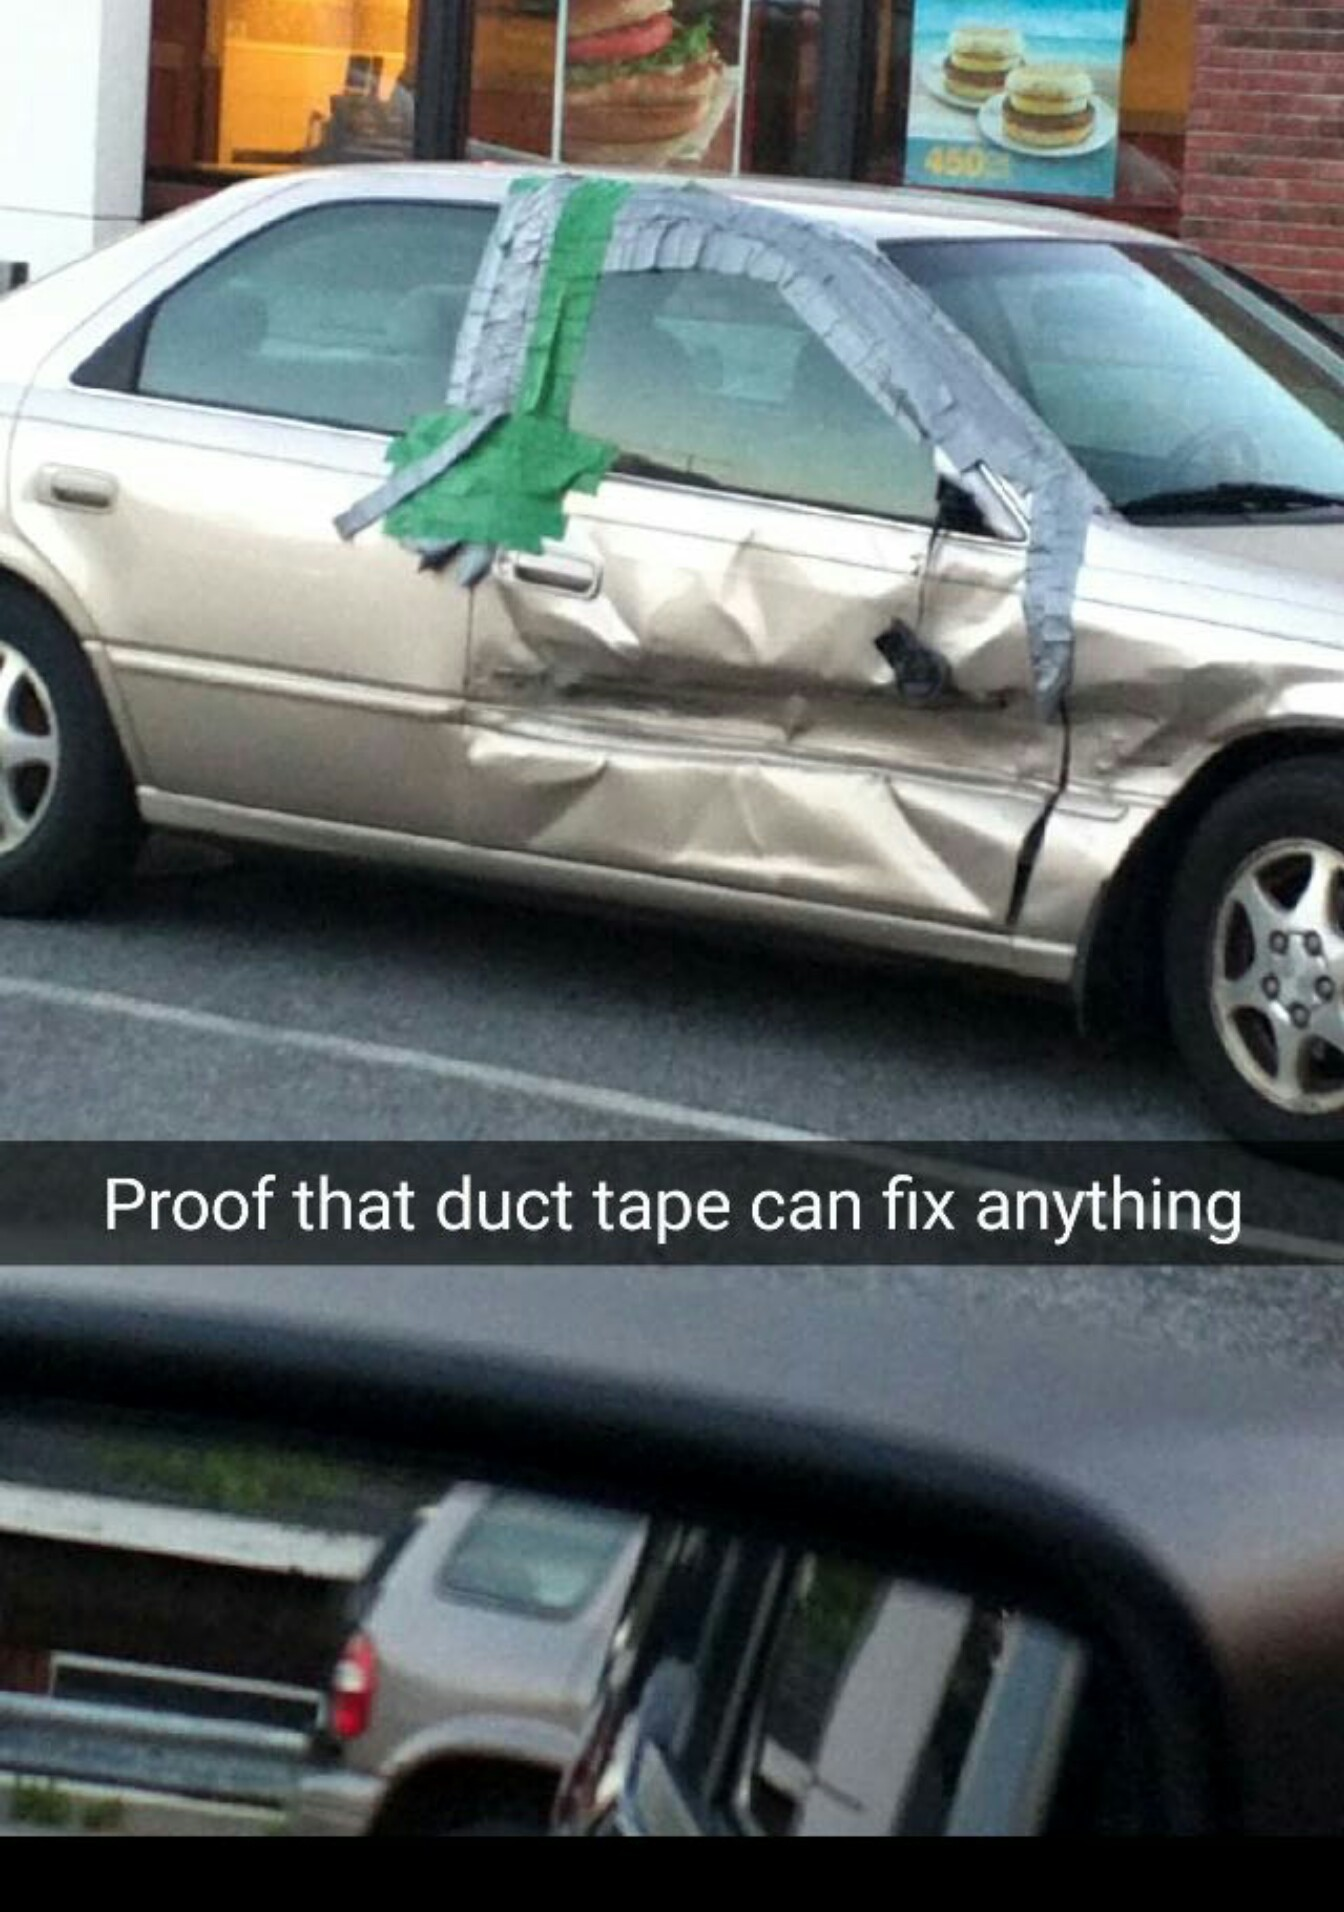 WD40 or duct tape mate - meme